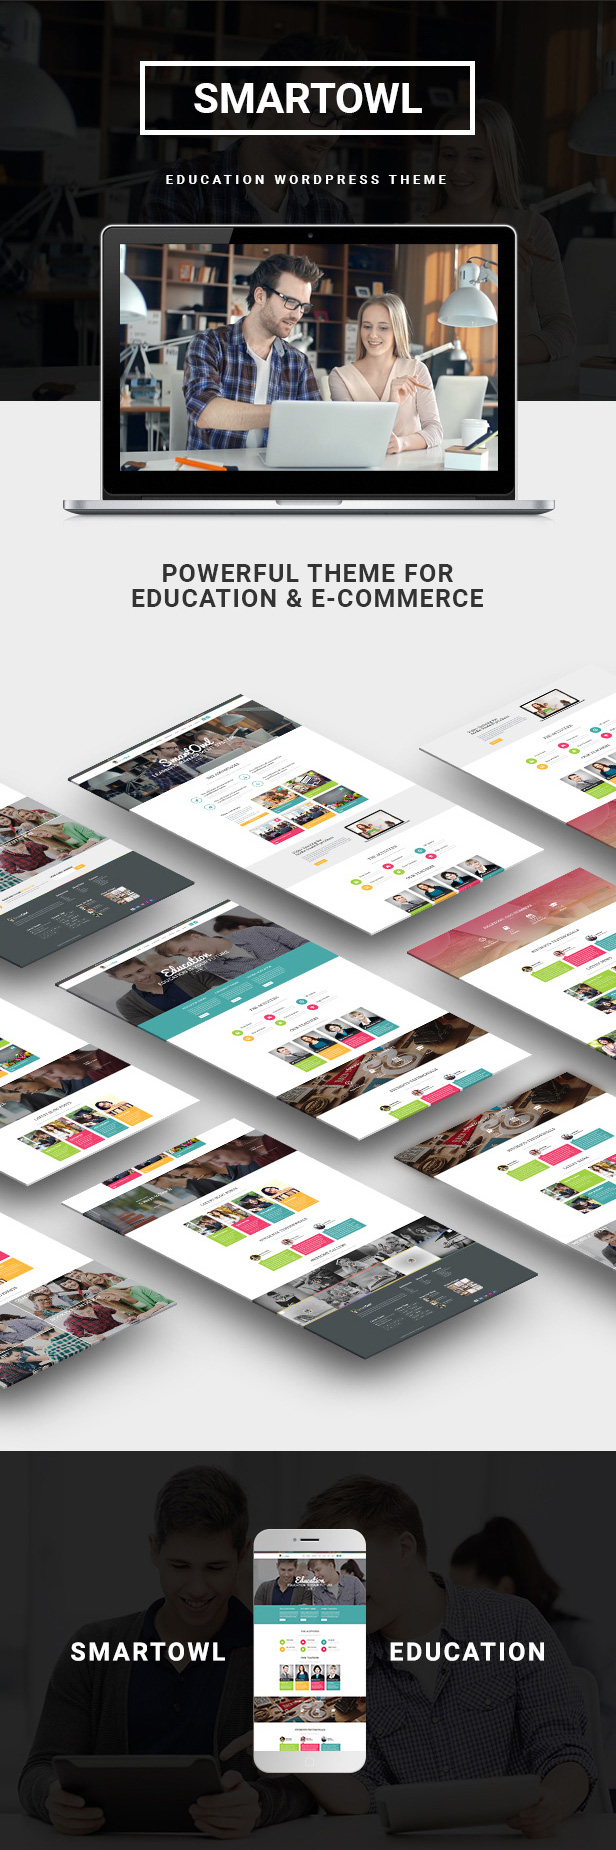 SmartOWL - Education Theme & Learning Management System for WordPress - 10